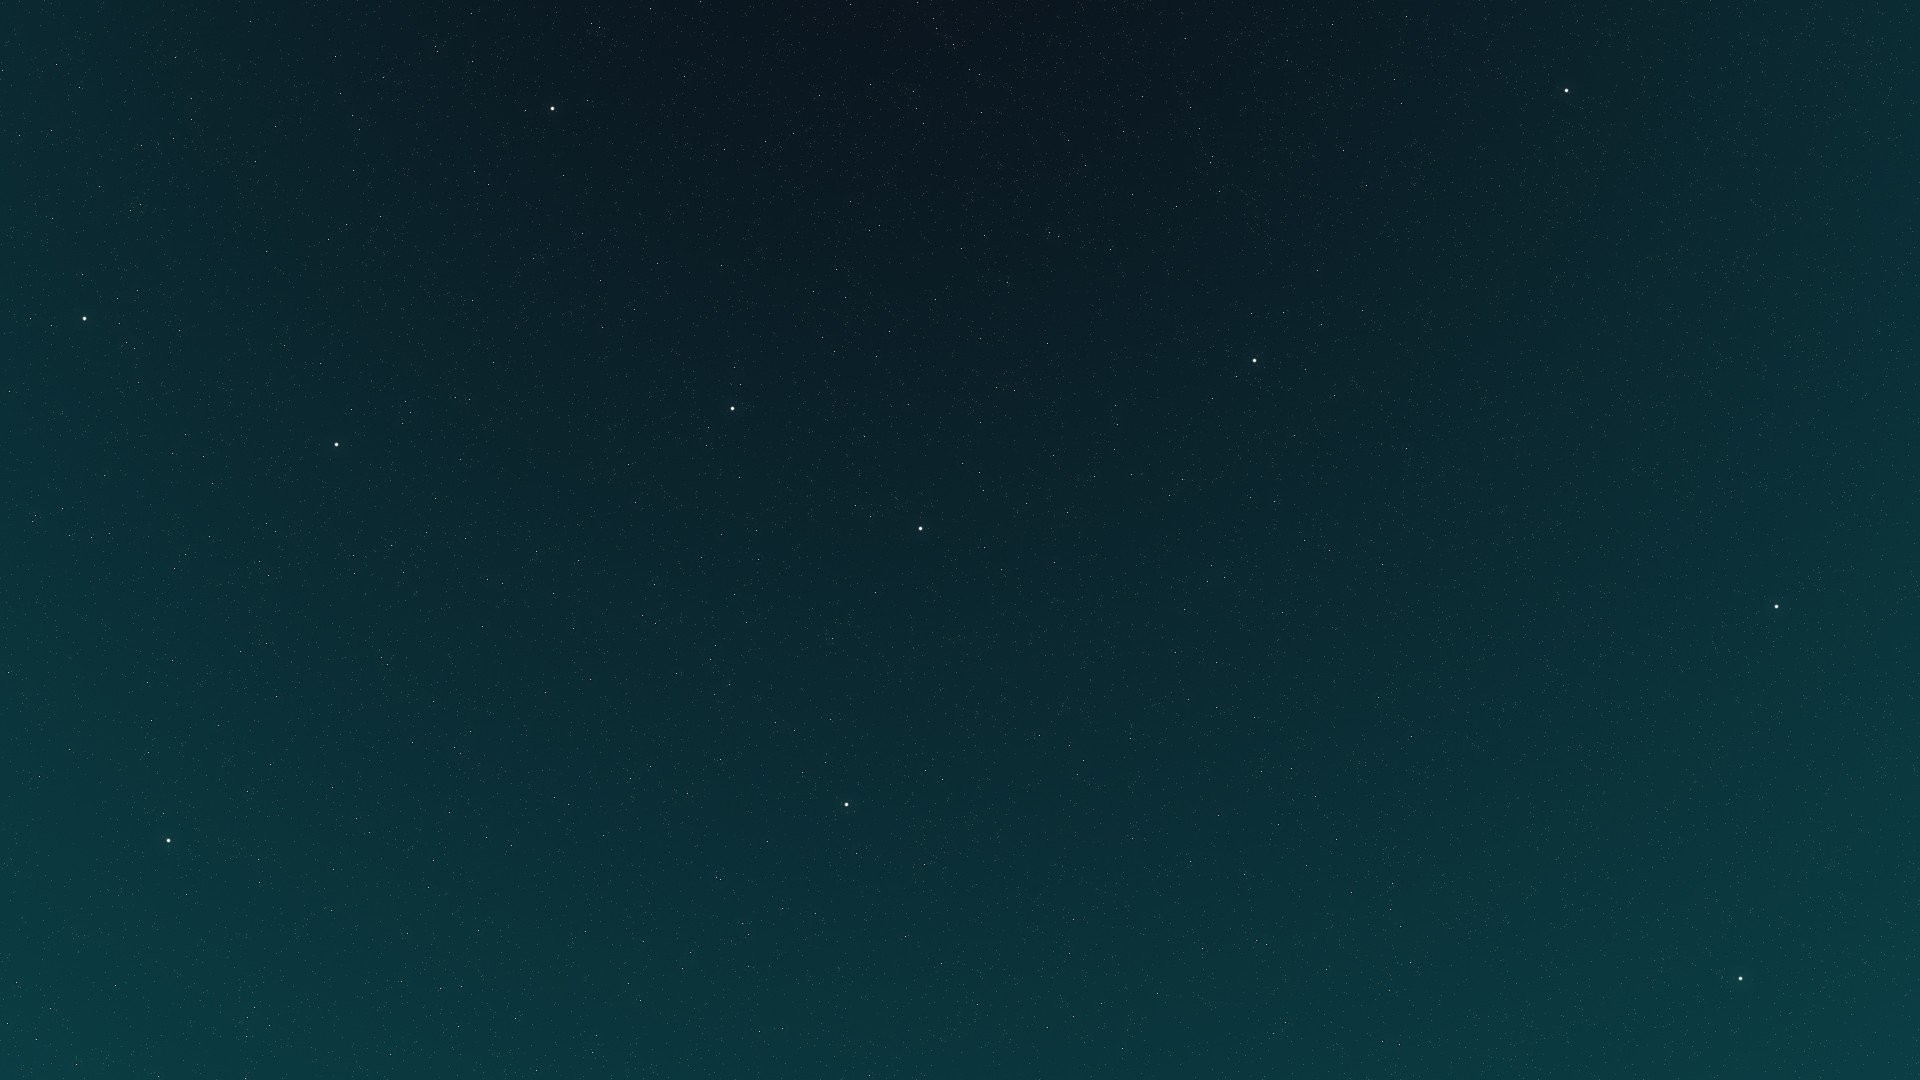 Res: 1920x1080, sky, skyscapes, macbook, nature, night high resolution,hd nature wallpapers,  starfield, stars, constellation, tablet backgrounds,night Wallpaper HD